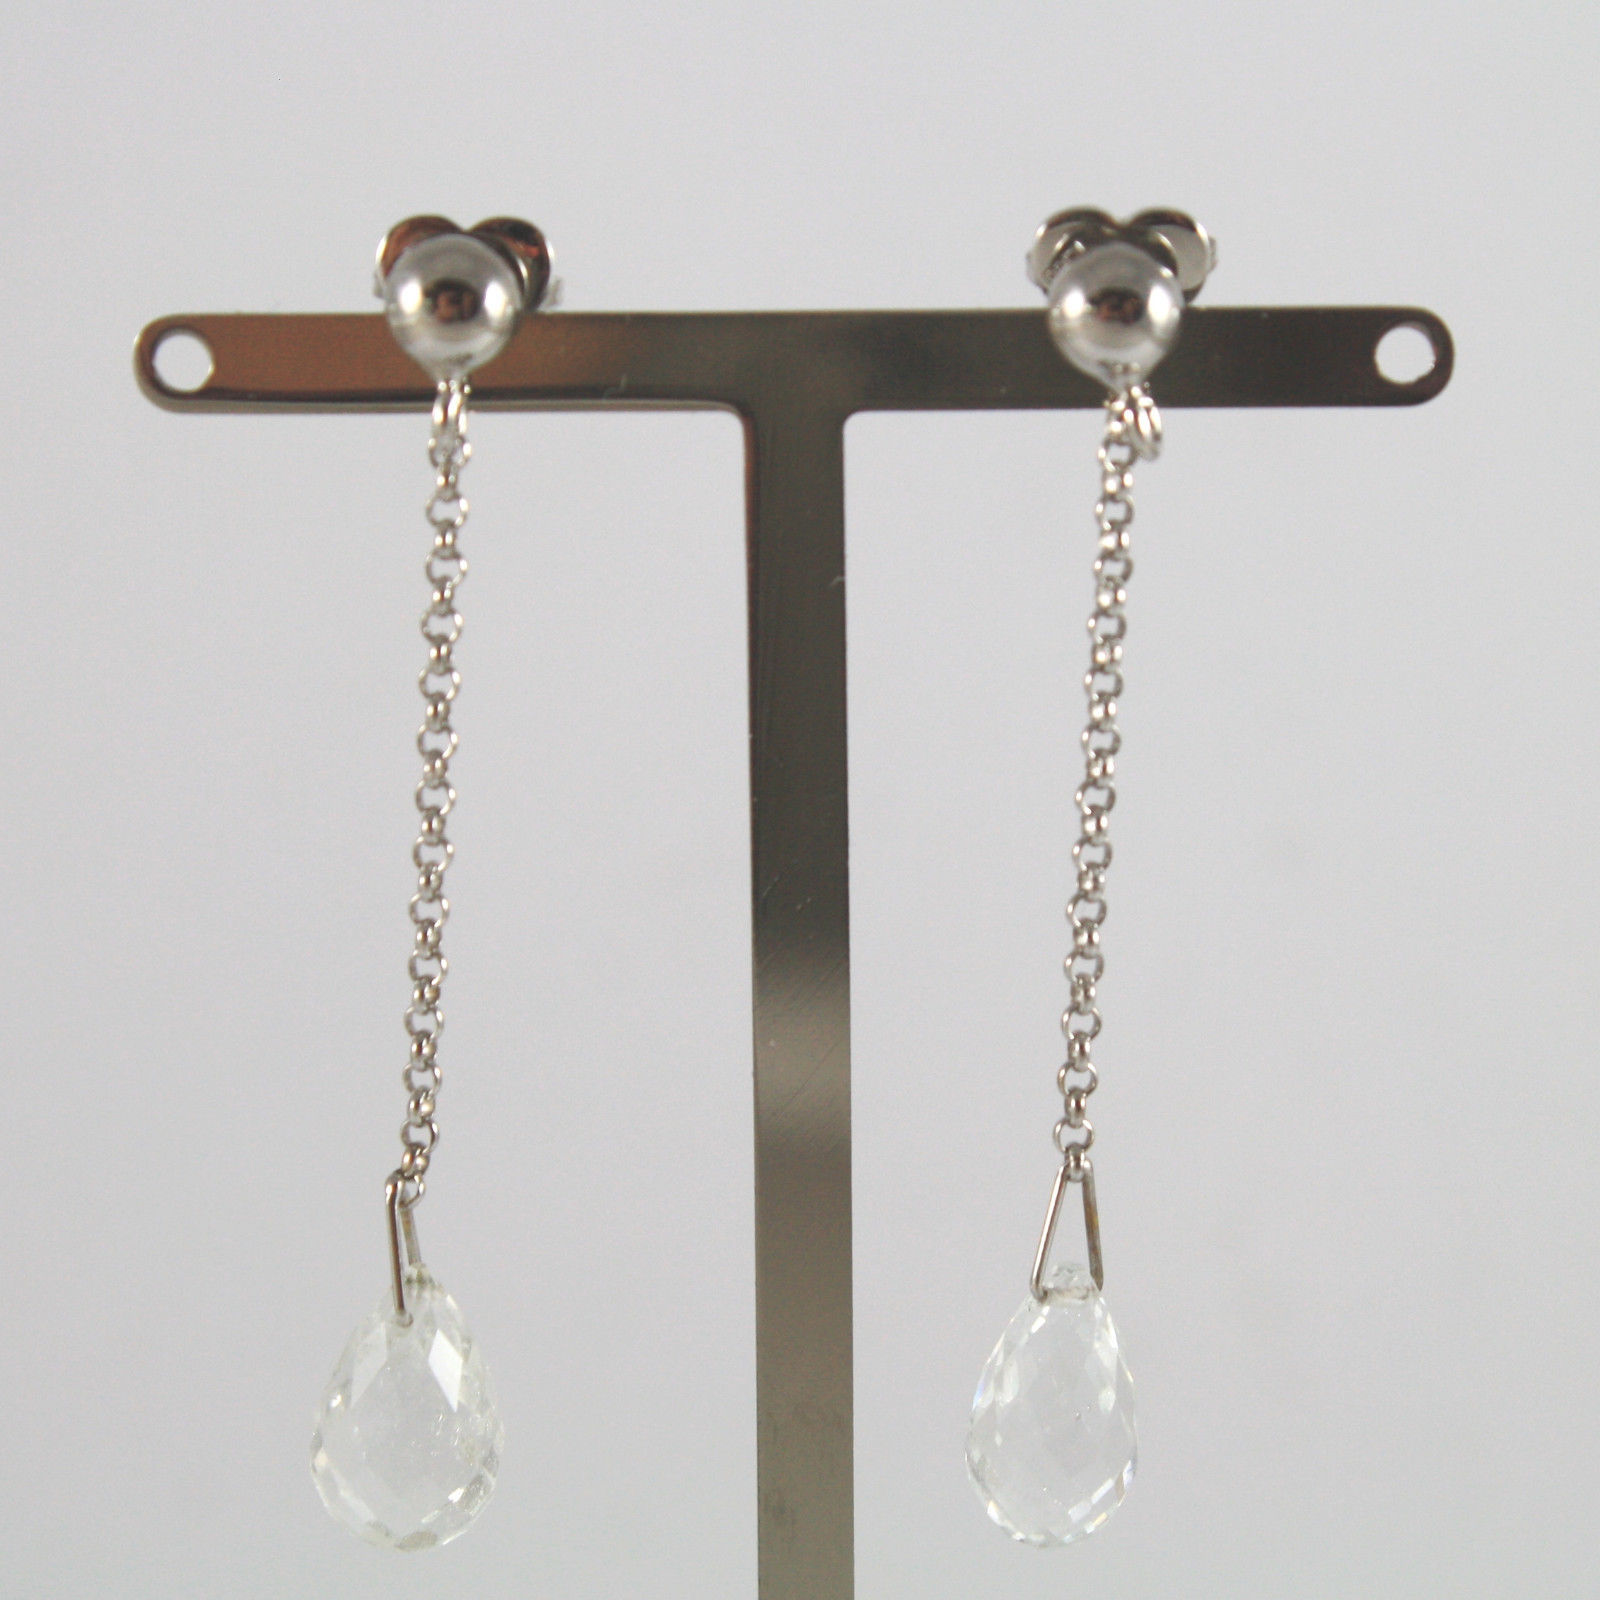 SOLID 18K WHITE GOLD EARRINGS, WITH DROPS OF TRANSPARENT TOURMALINES